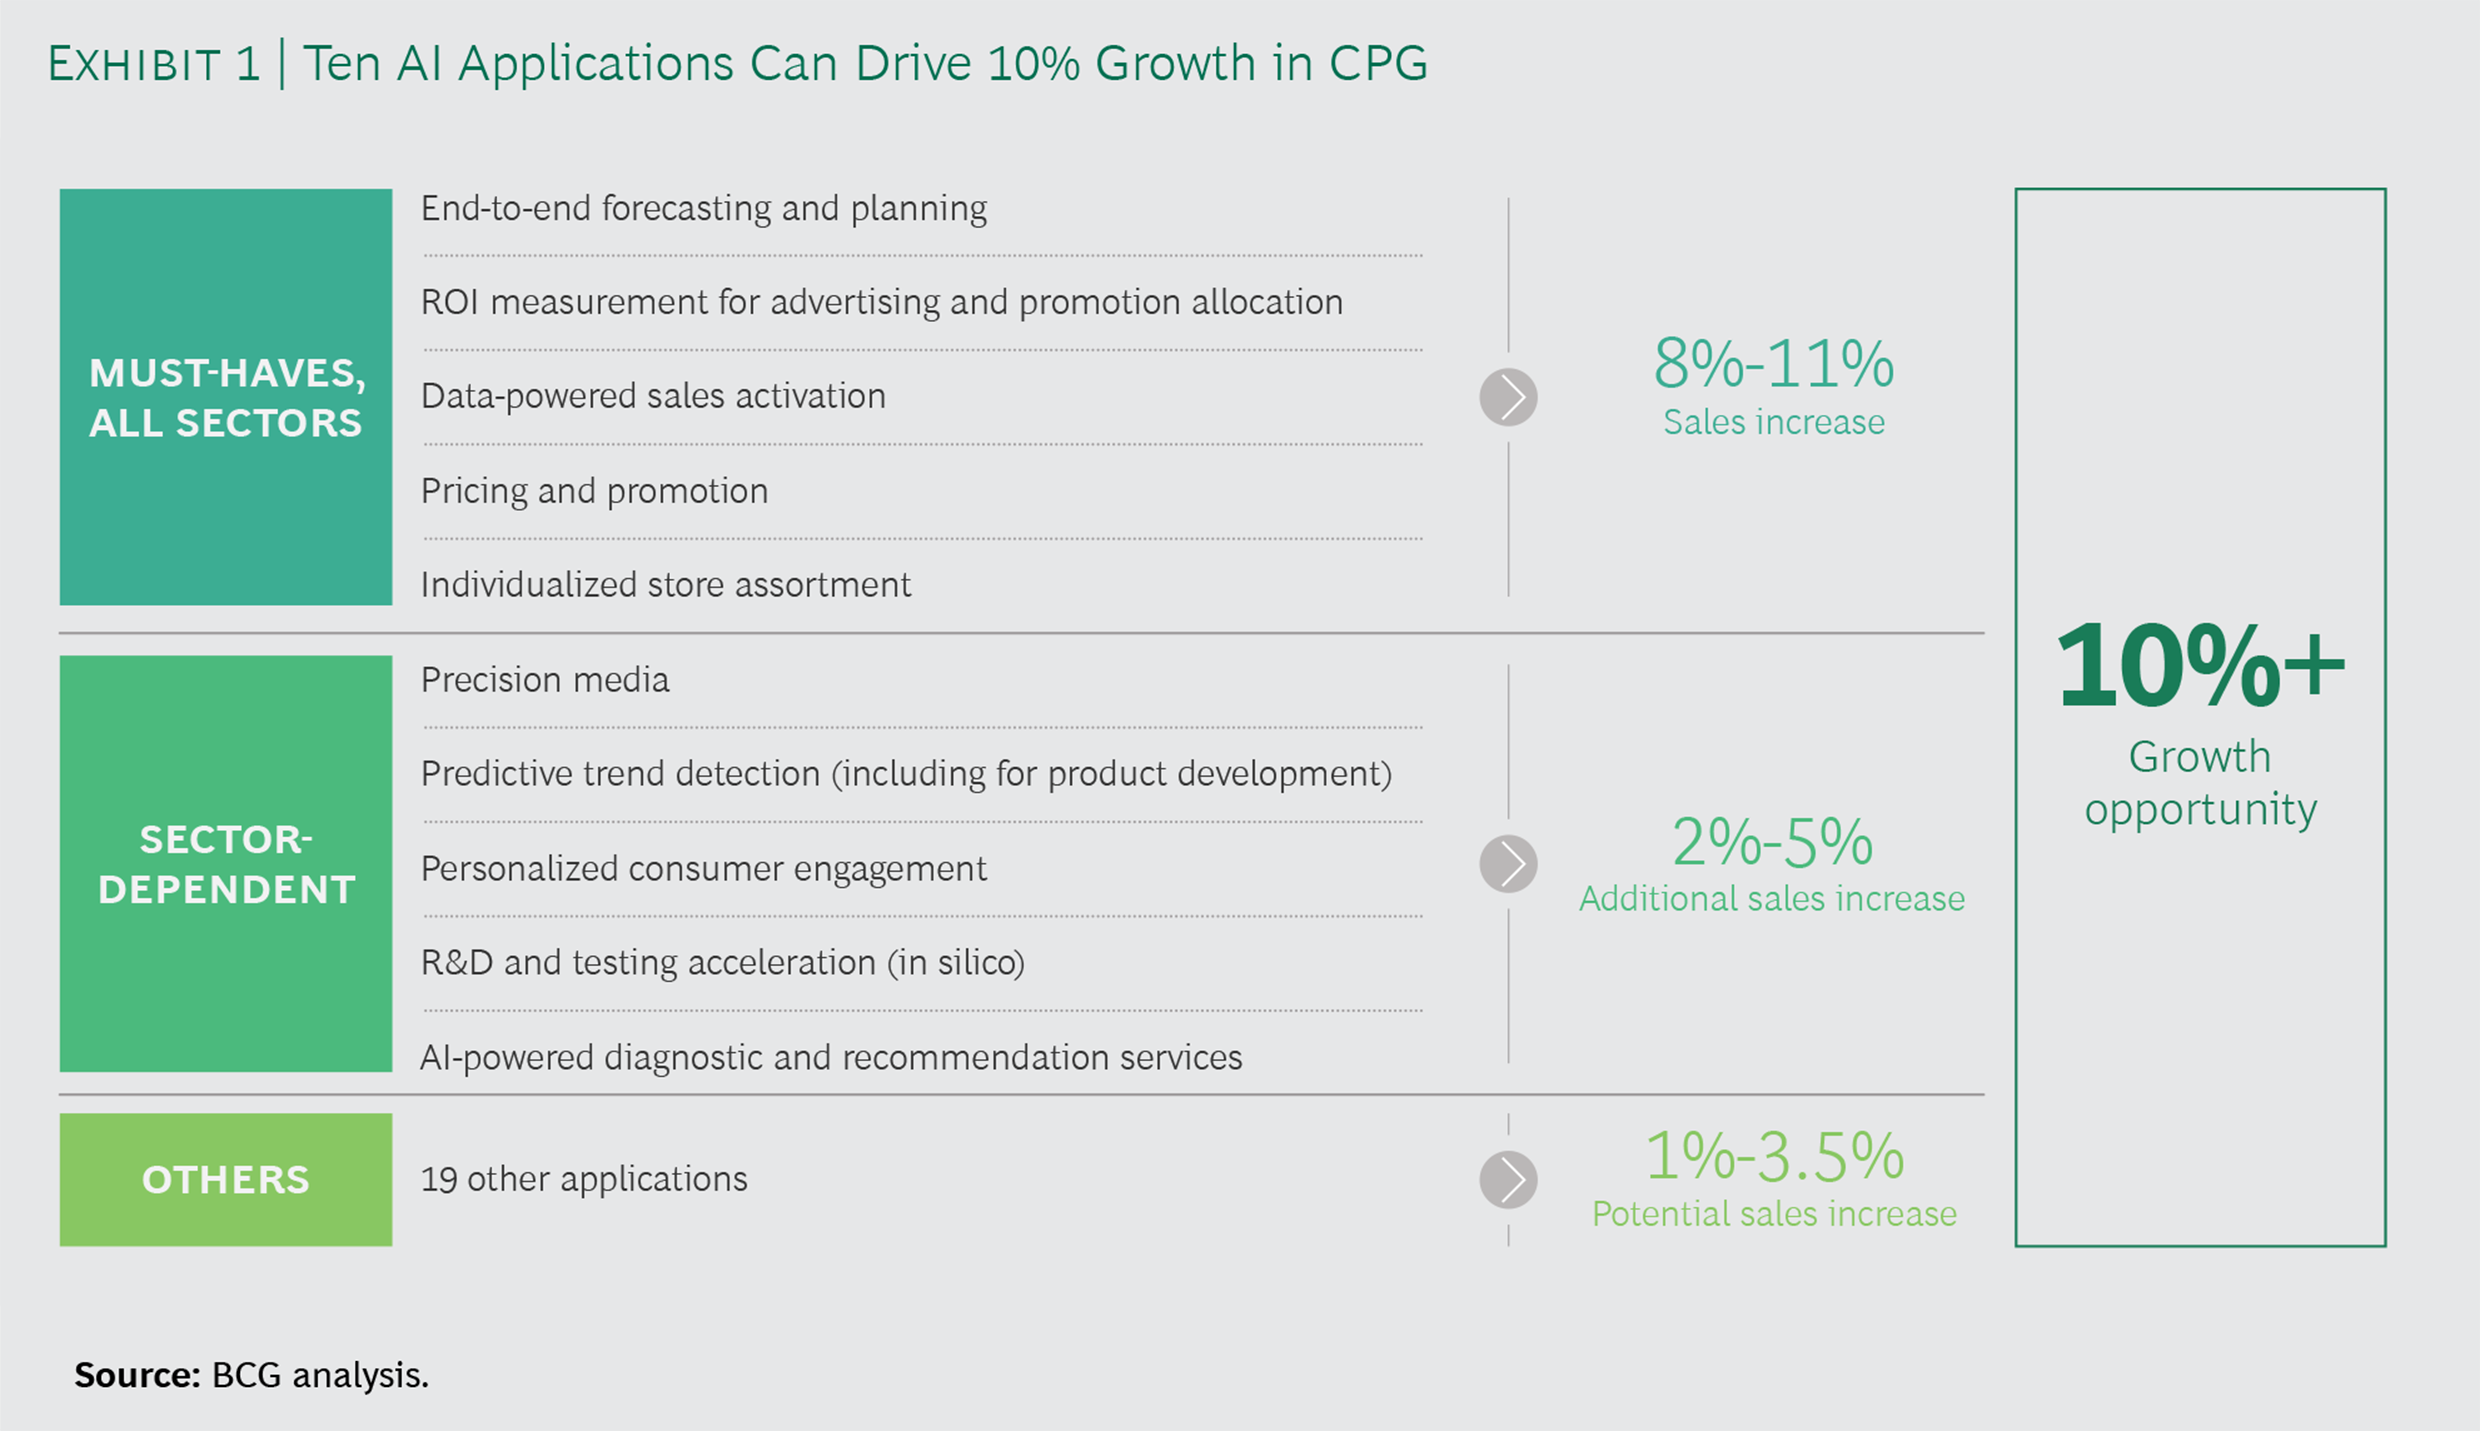 Chart depicting artificial intelligence applications that drive consumer packaged goods (CPG) growth.